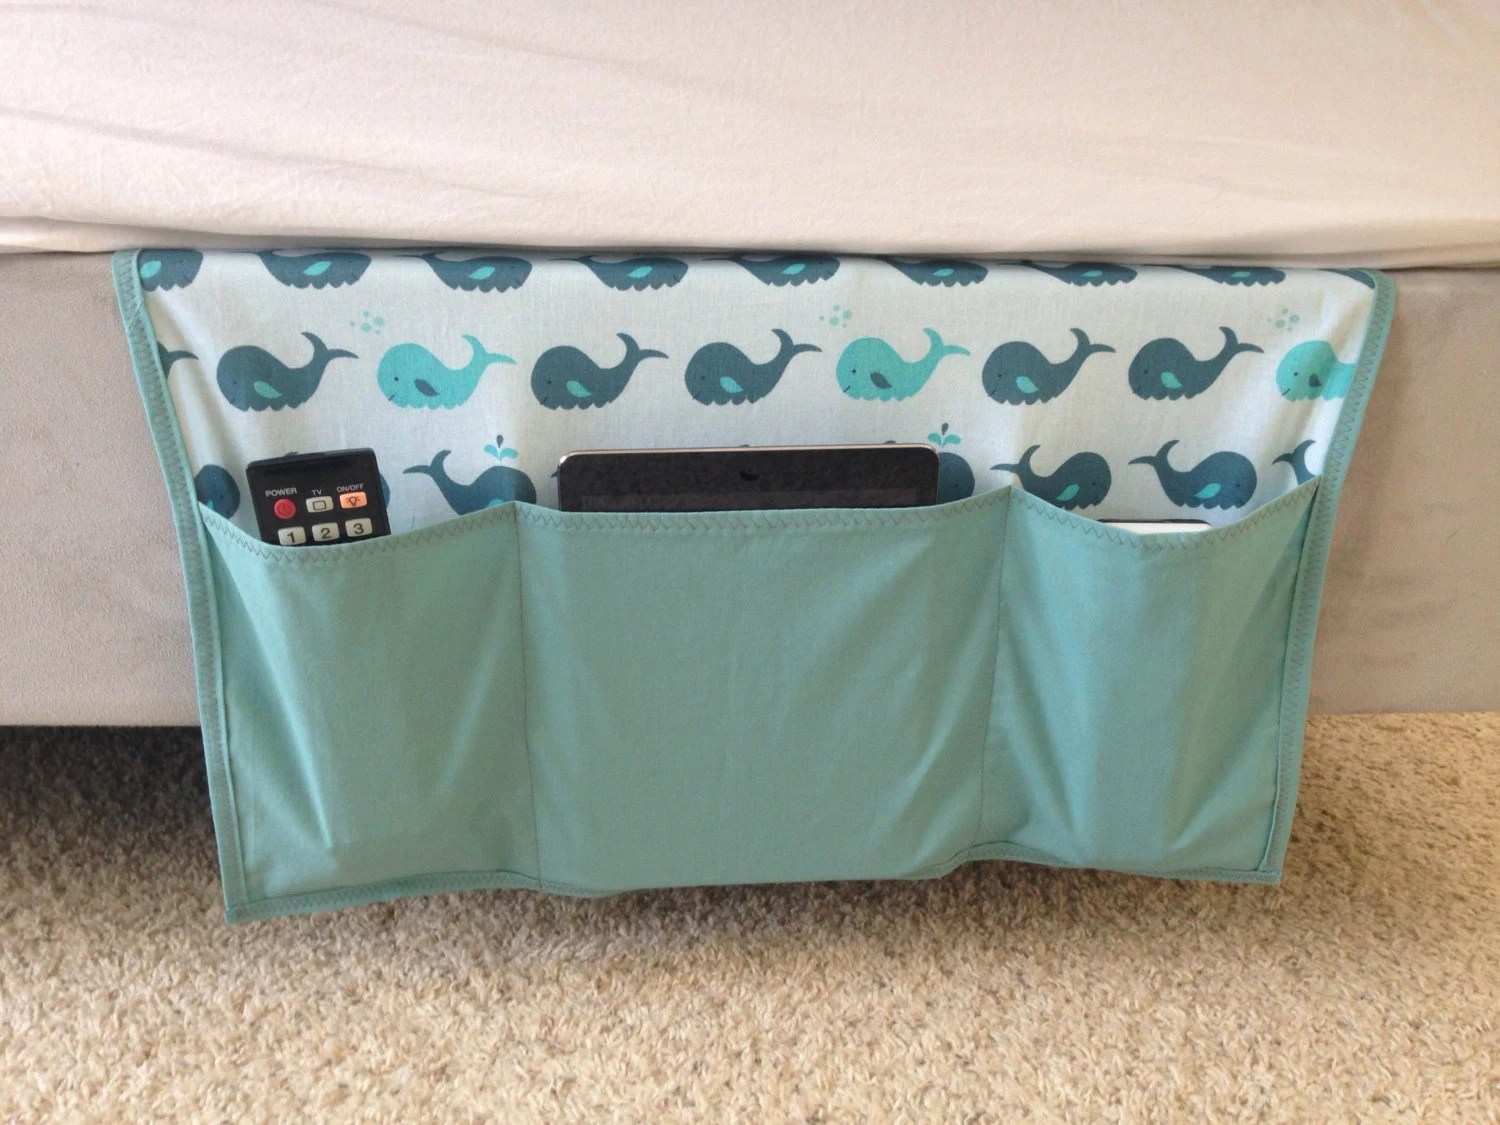 remote control holder for chair pattern wedding covers hire inverness whales bed caddy organizer bedside